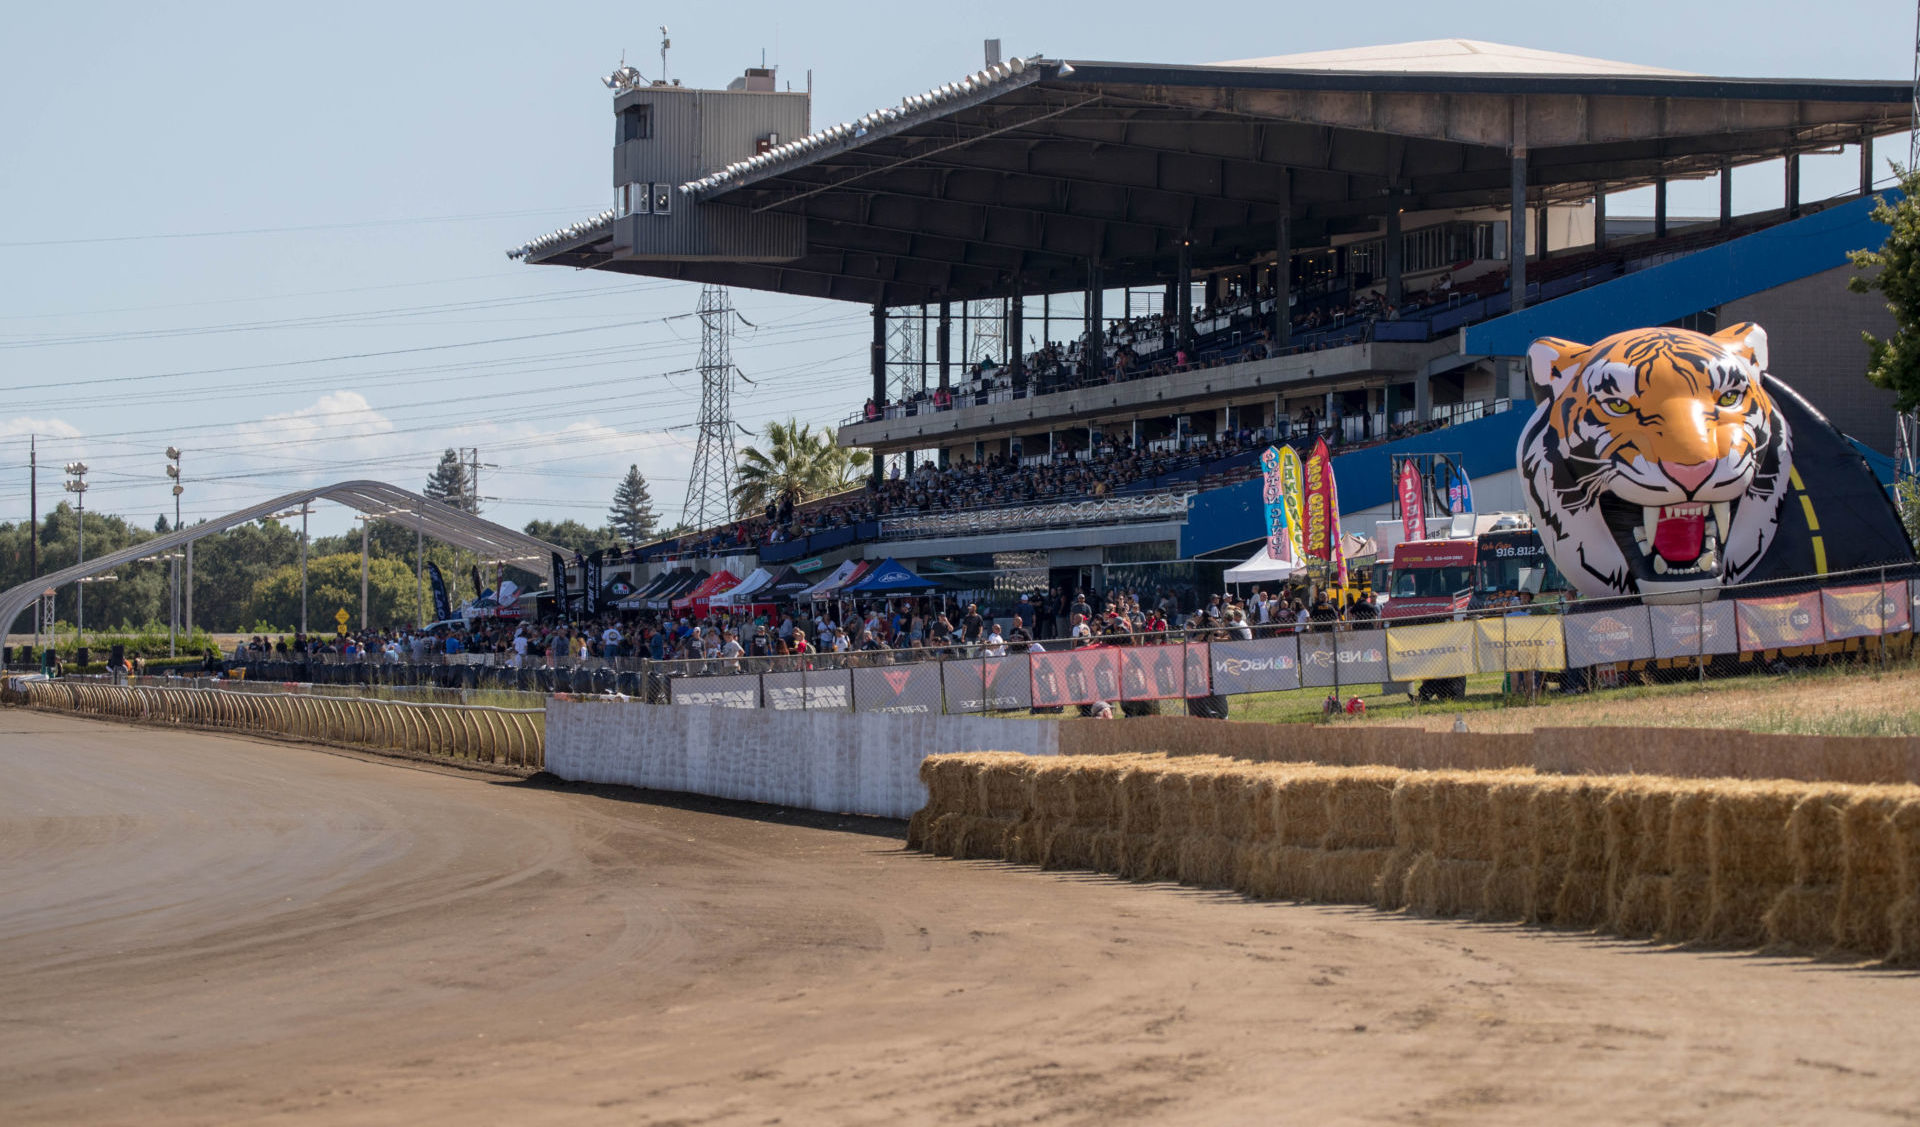 The one-mile dirt track at the Cal Expo in Sacramento, California. Photo by Scott Hunter, courtesy AFT.